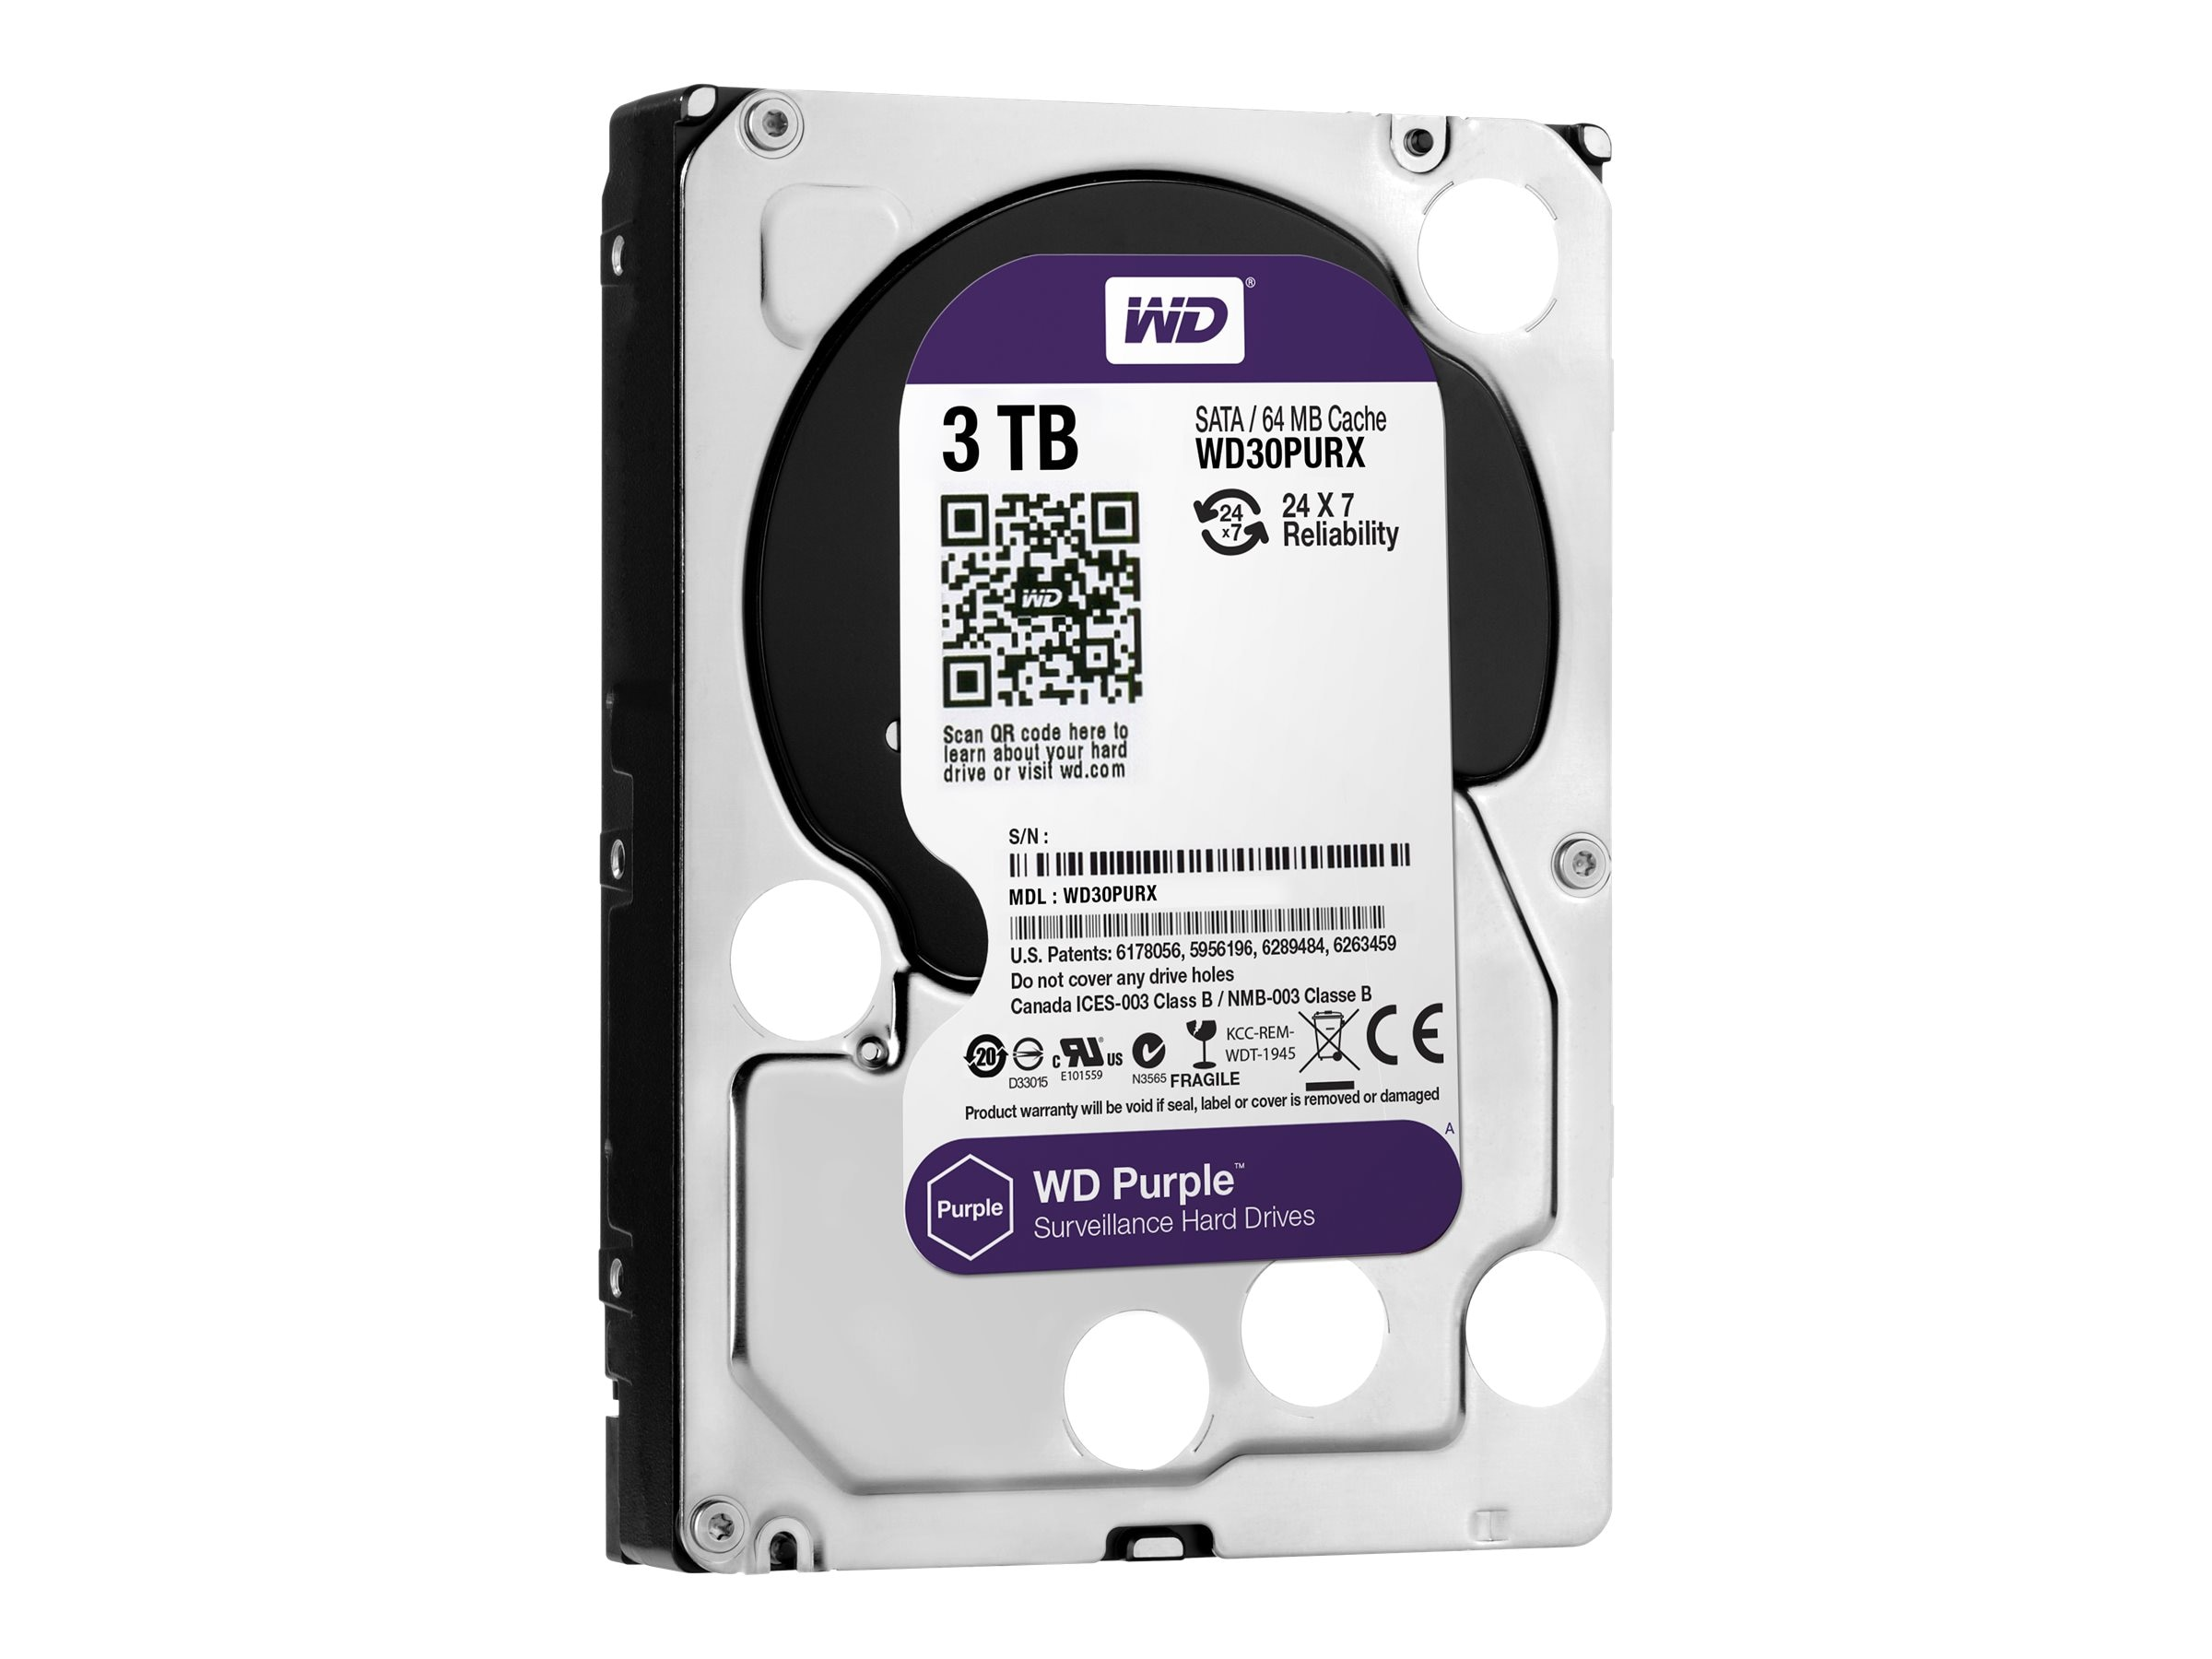 WD WD30PURX Image 4